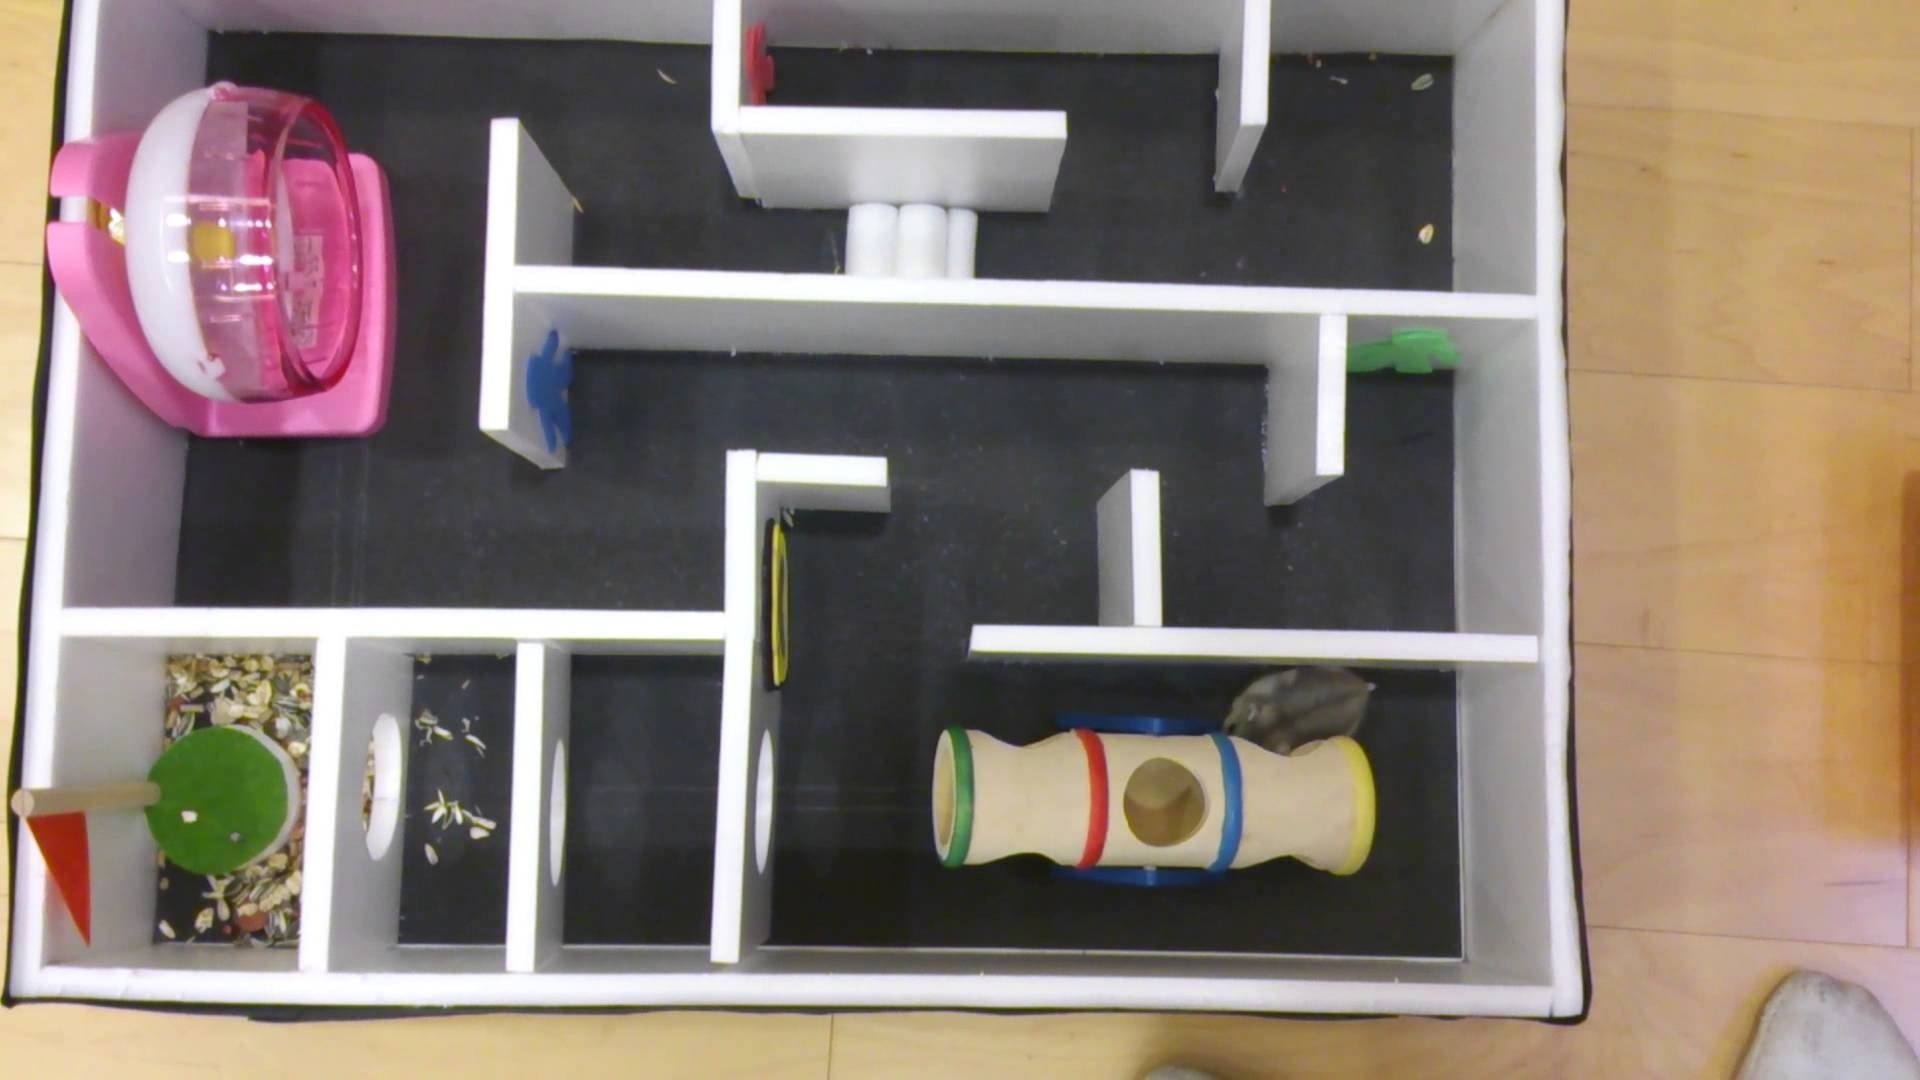 10 Attractive Science Fair Project Ideas For 9Th Grade dylan tangdanny chen hamster maze9th grade science fair project 6 2021